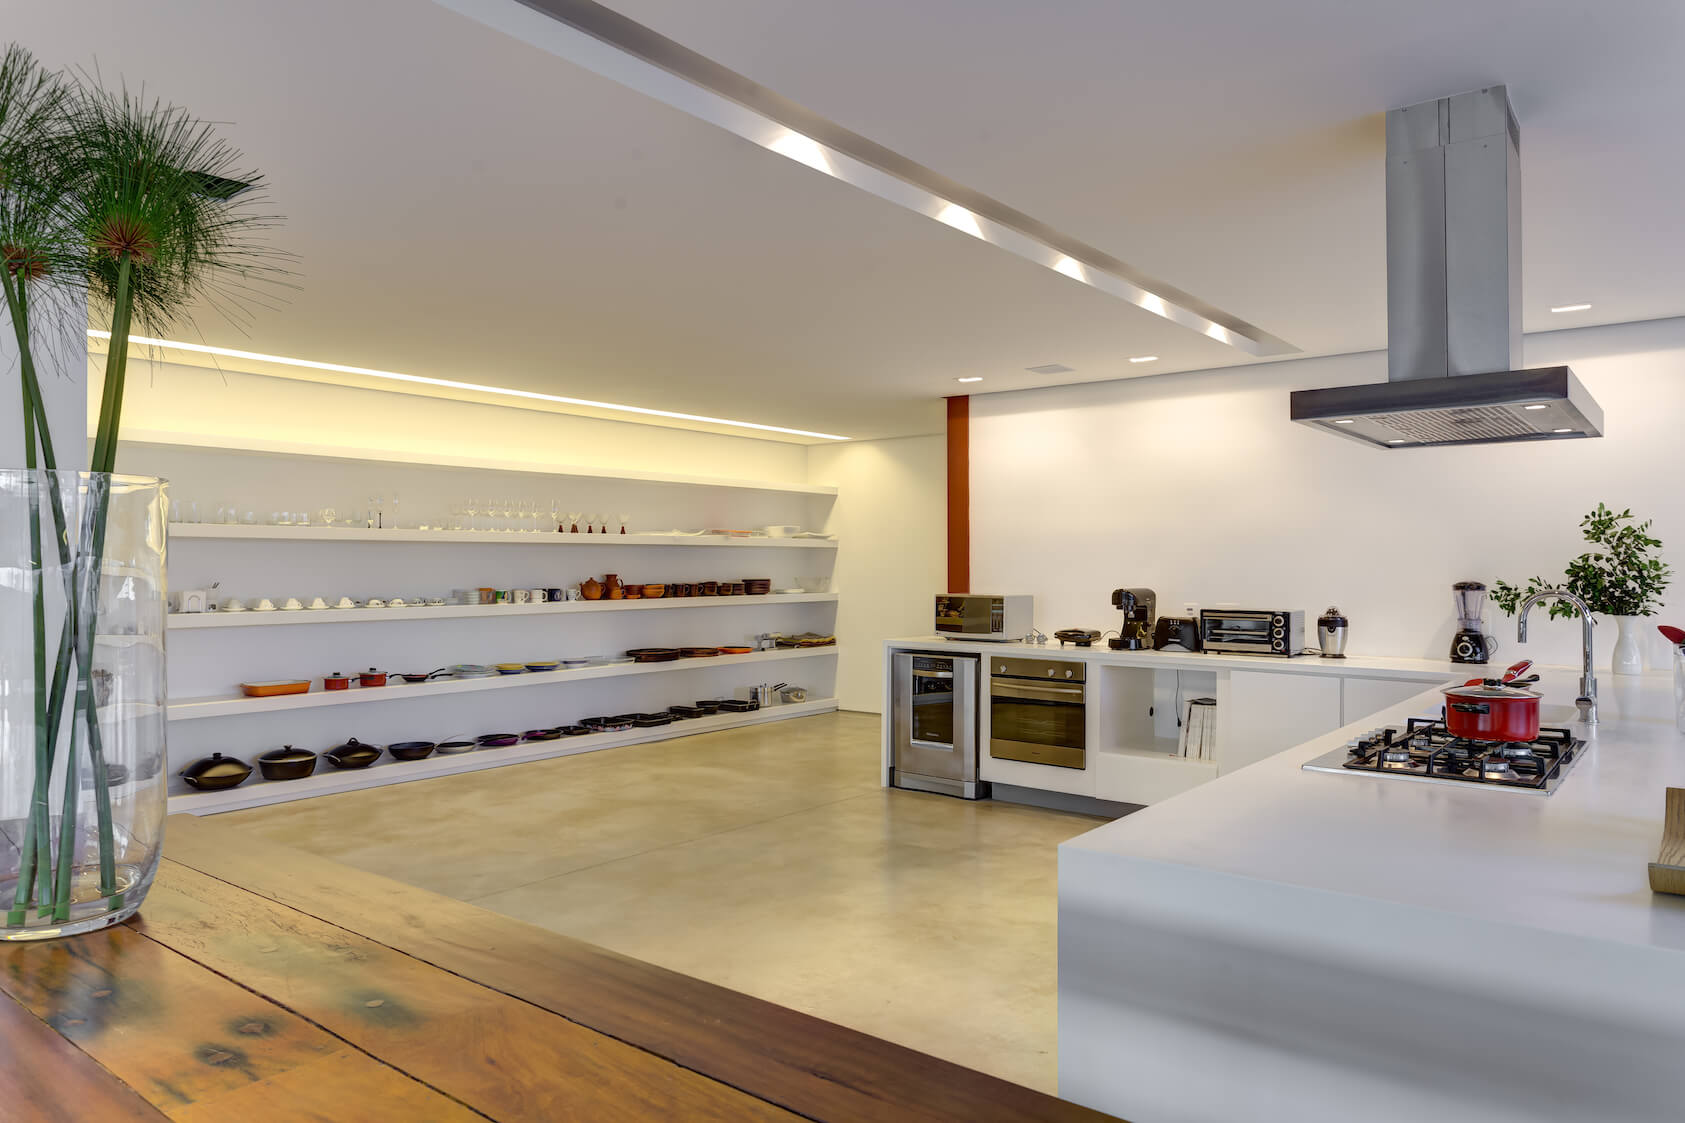 The thoroughly modern and minimalist kitchen space comprises a single large L-shaped island with white countertops, while all cooking utensils and dishes are kept in the open on an expanse of white shelving at left.